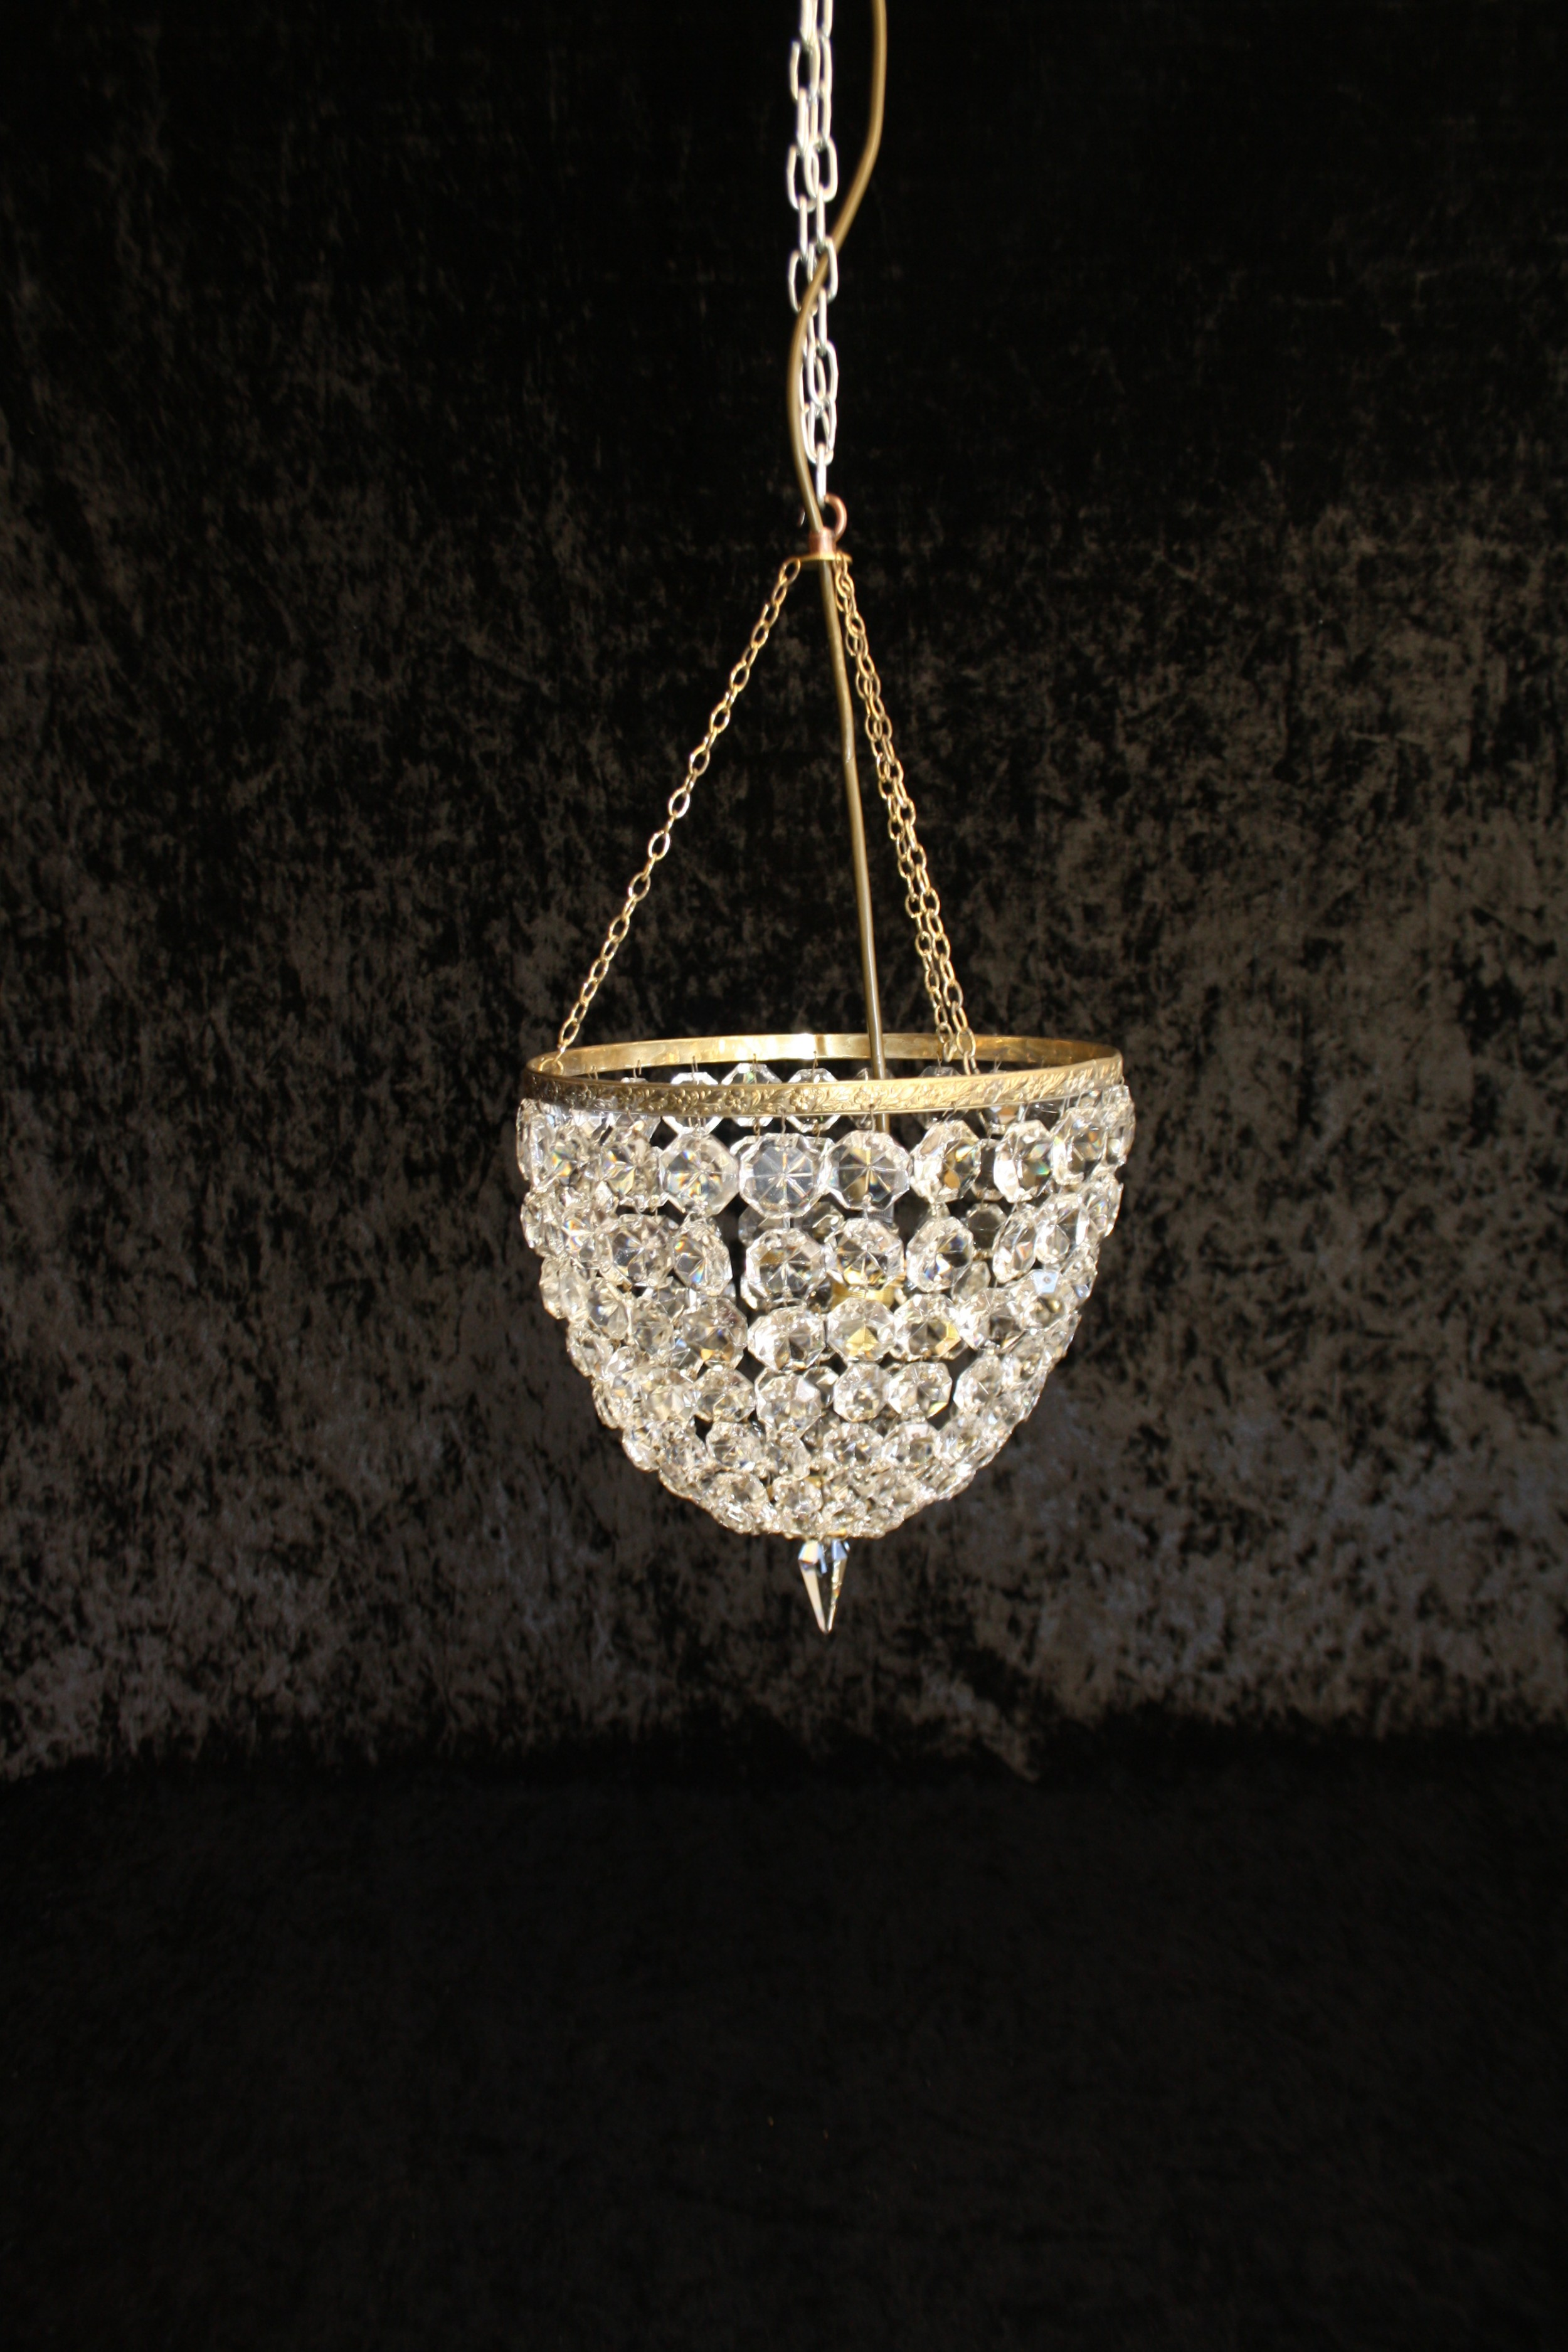 early 20th century large bag chandelier